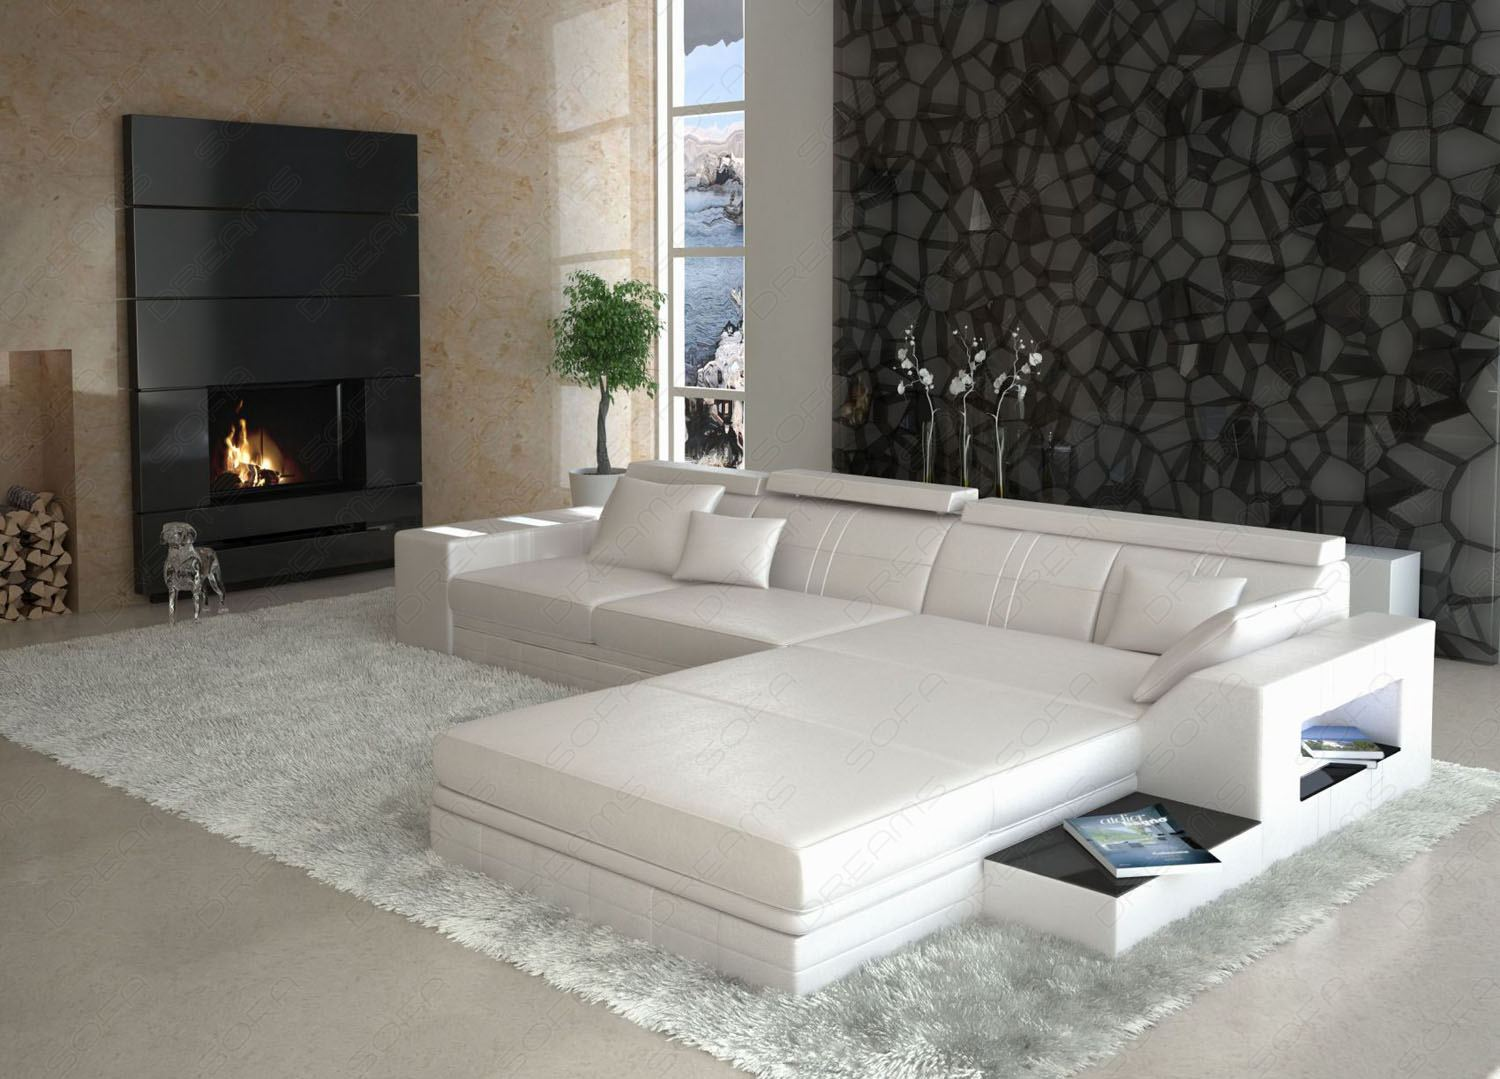 ledersofa asti l form sofa mit licht wohnlandschaft ecksofa ebay. Black Bedroom Furniture Sets. Home Design Ideas